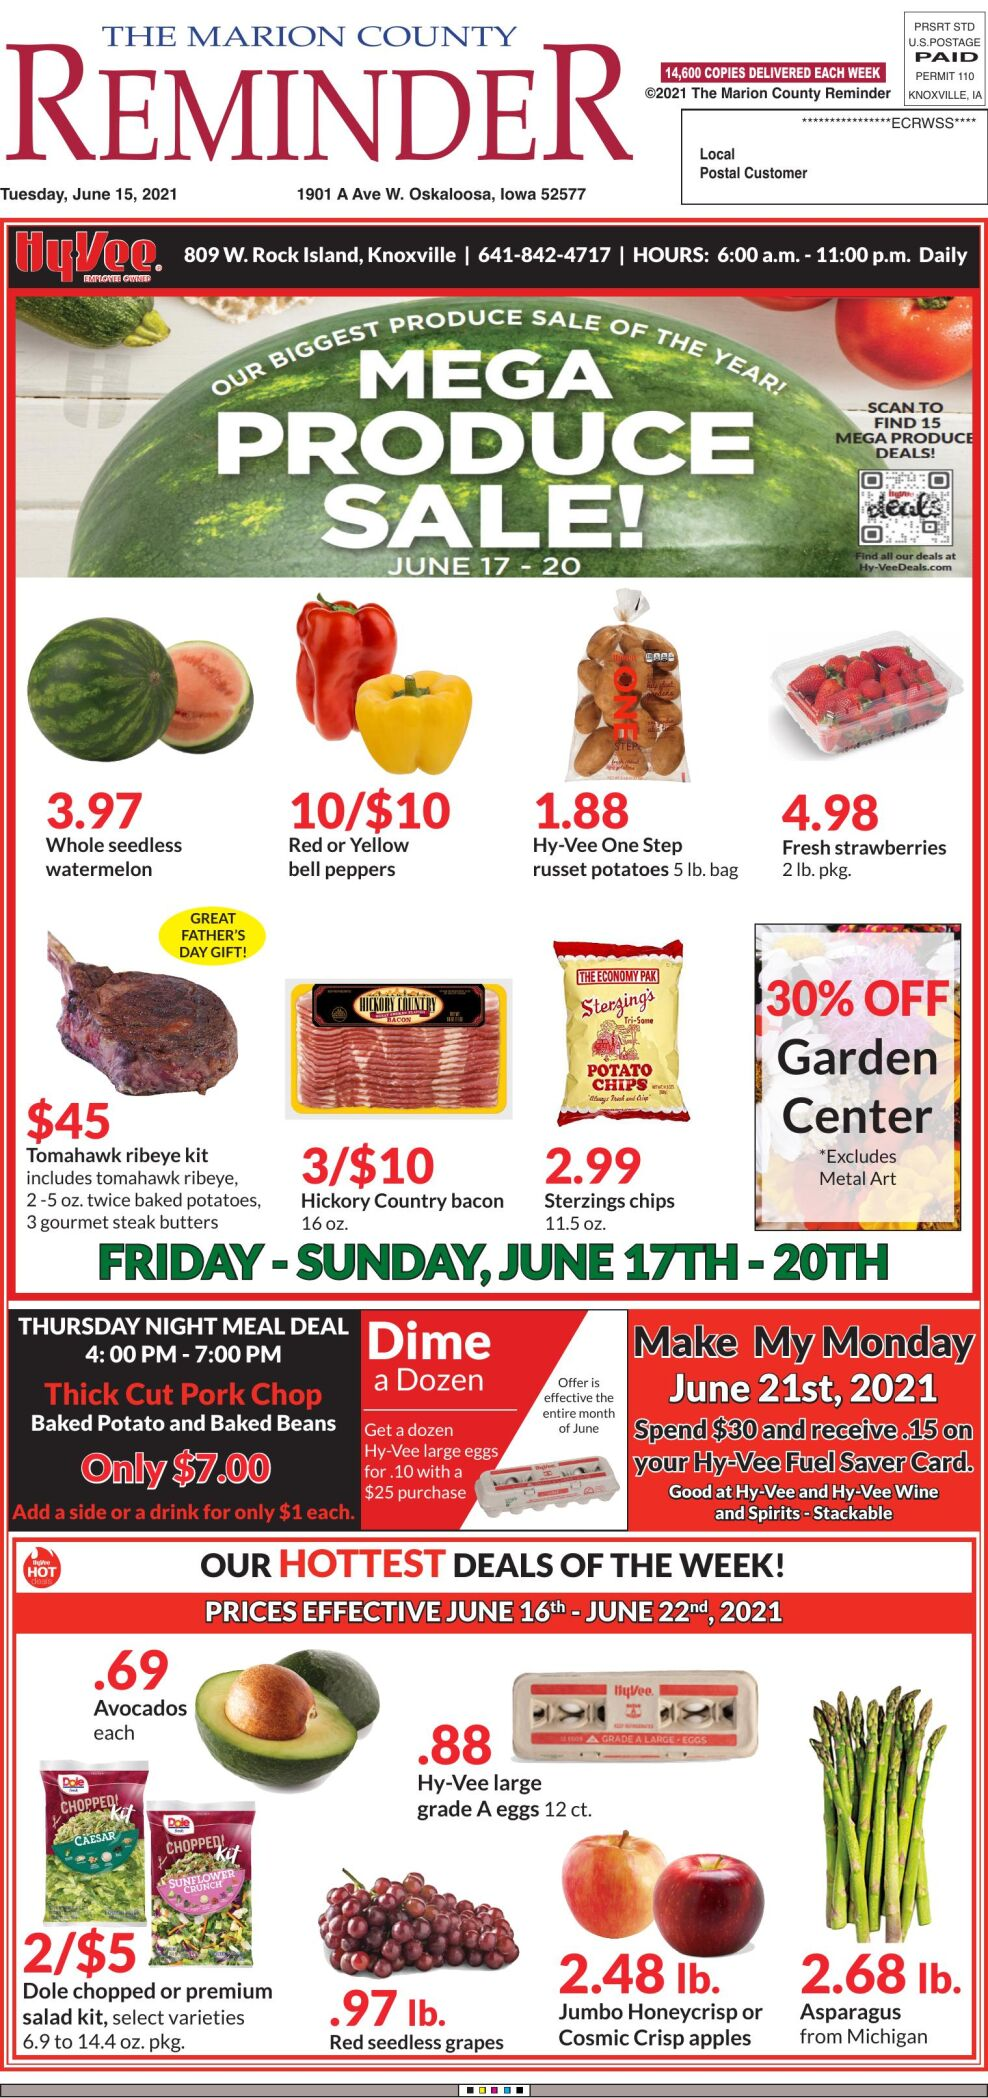 The Marion County Reminder week of 06/15/21